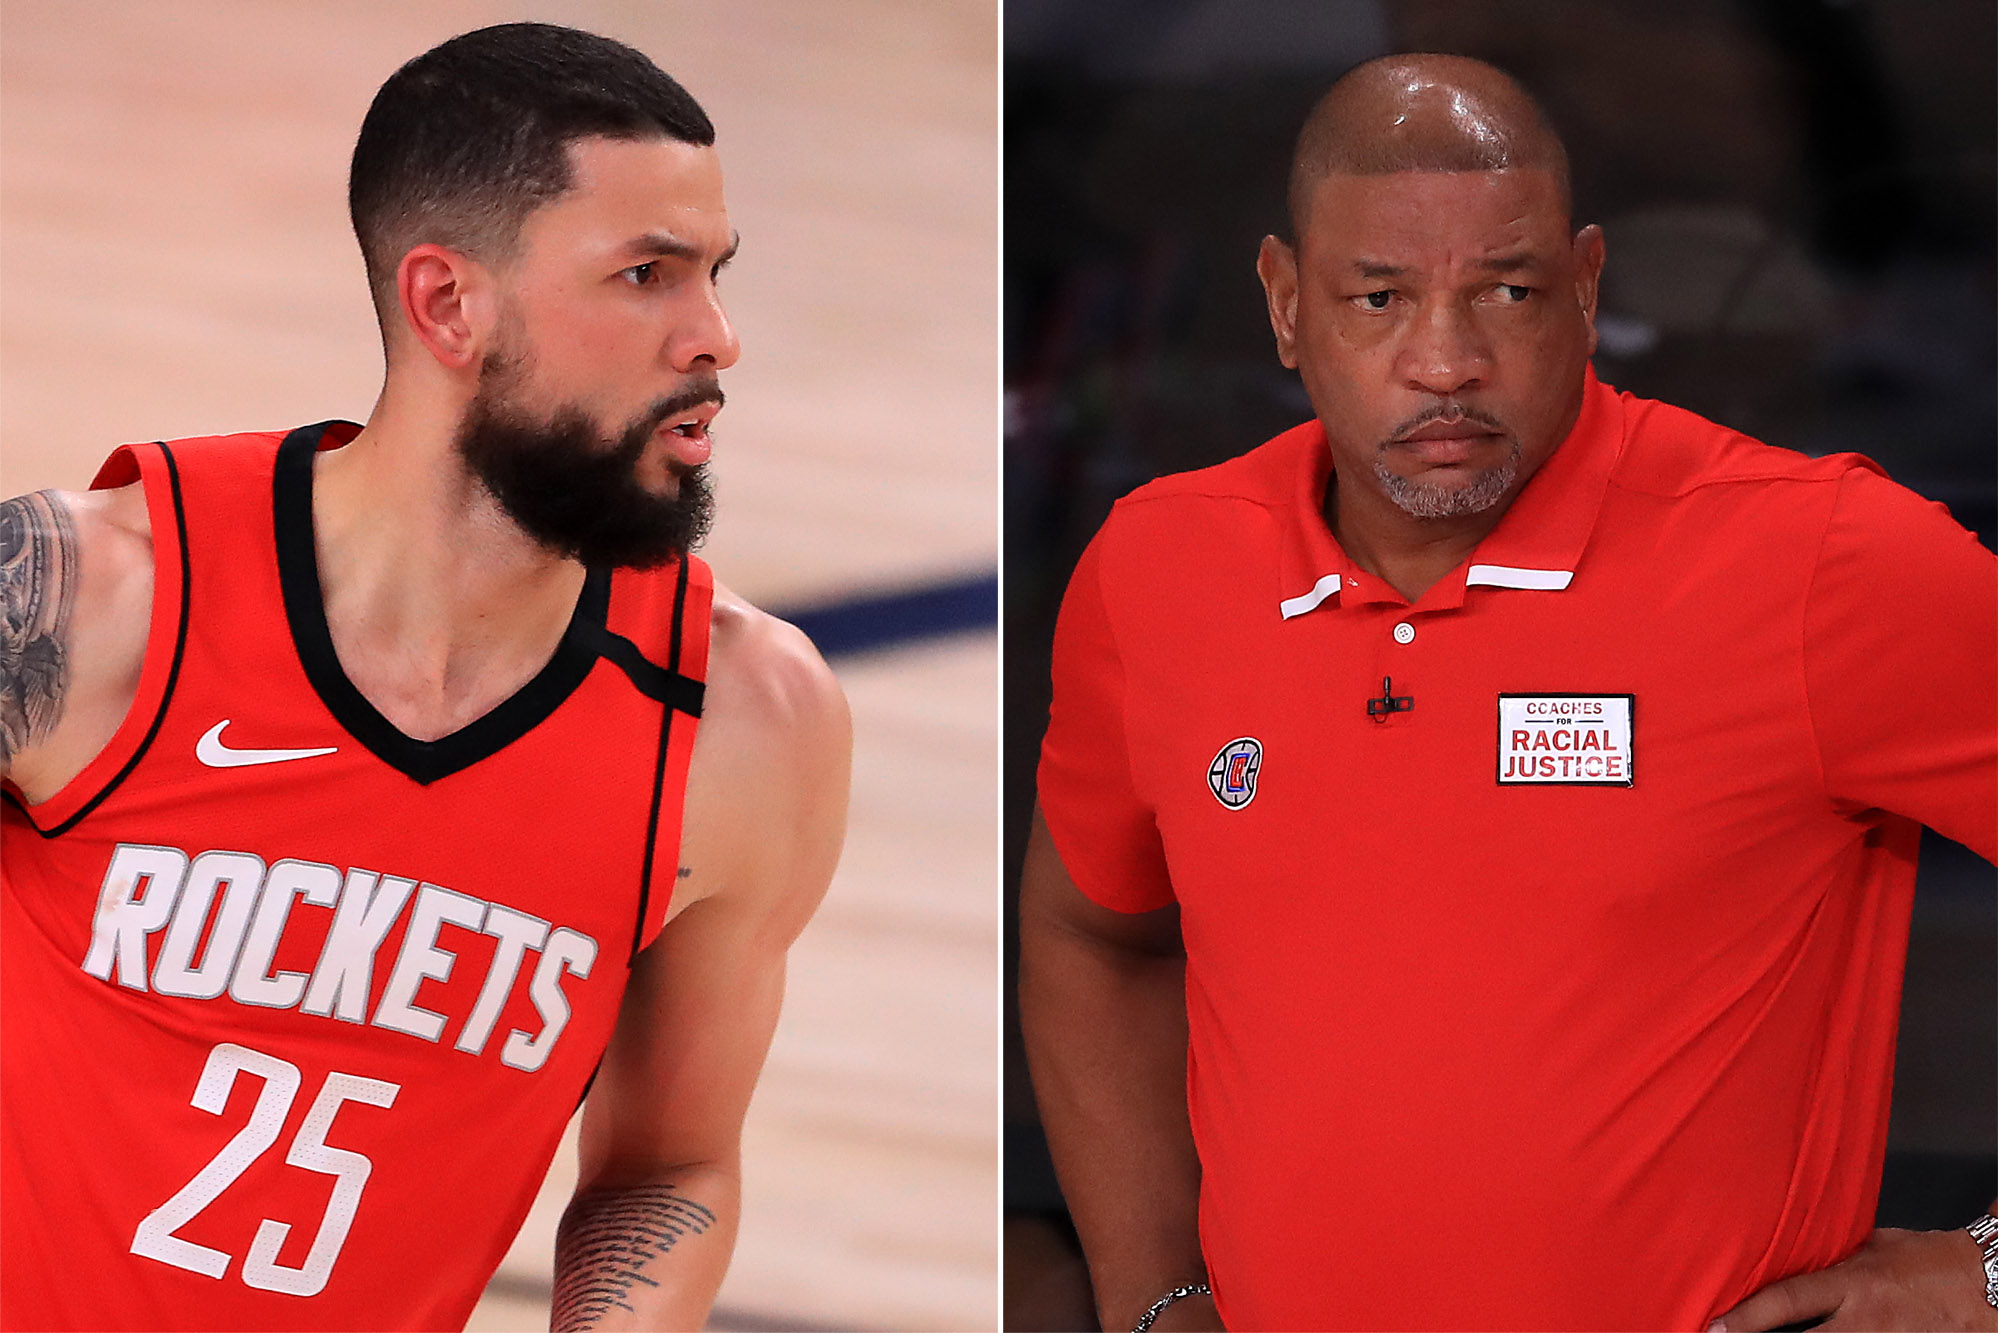 Doctor River pushed son Austin from the 76ers to the Nucks